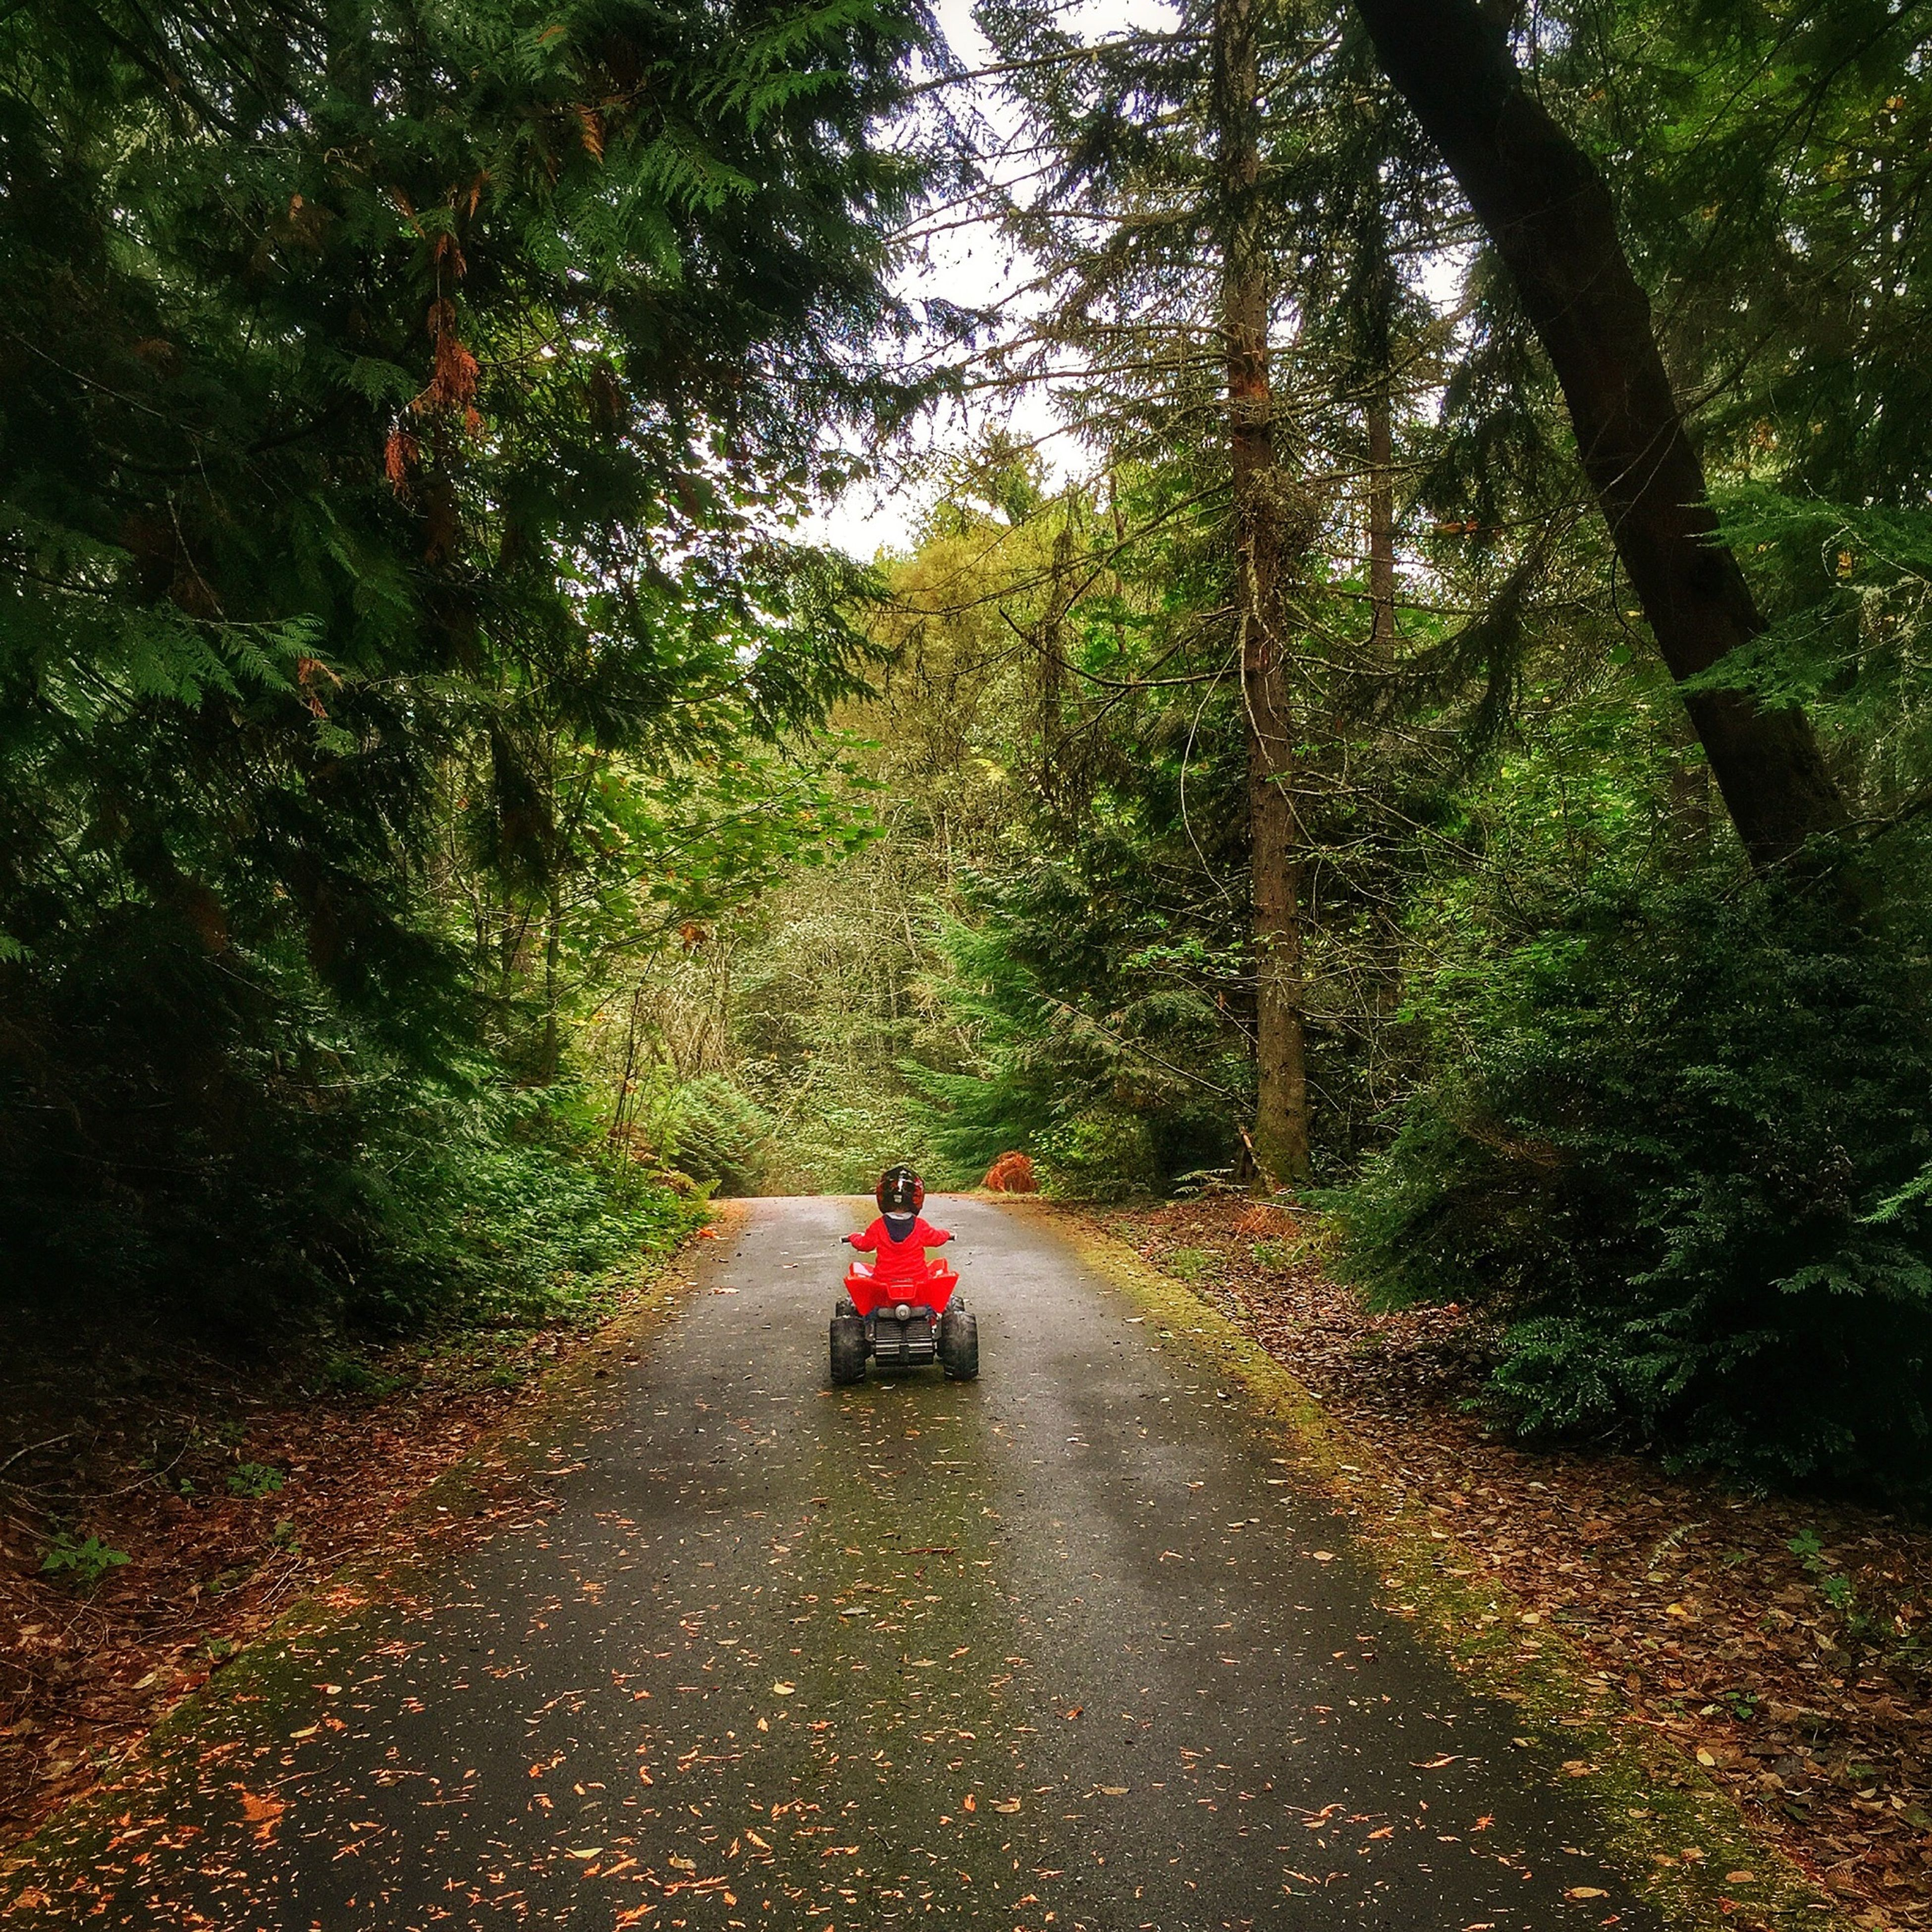 transportation, tree, mode of transport, land vehicle, the way forward, road, green color, growth, car, on the move, nature, diminishing perspective, travel, plant, forest, street, country road, tranquility